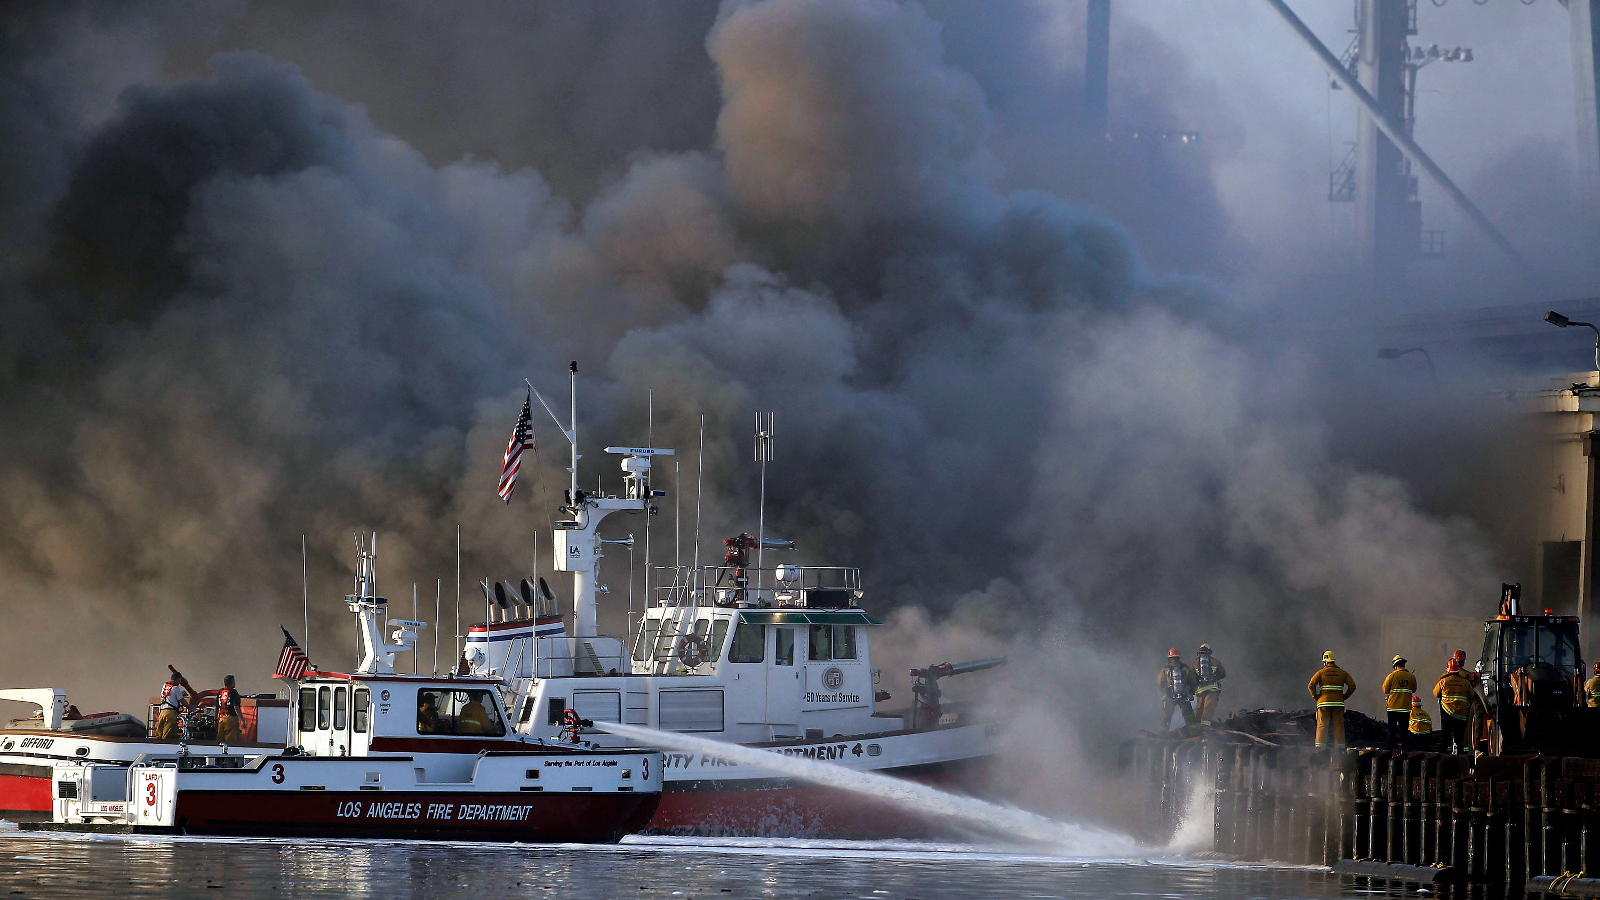 Los Angeles firefighters watch as smoke from a dock fire continues to rise at the Port of Los Angeles in the Wilmington section of Los Angeles on Tuesday, Sept 23, 2014. The fire that forced evacuations from the wharf continues to smolder but officials say it's under control. Nearly 12 hours after starting, the blaze is sending up huge plumes of smoke that is drifting over Los Angeles Harbor early Tuesday.